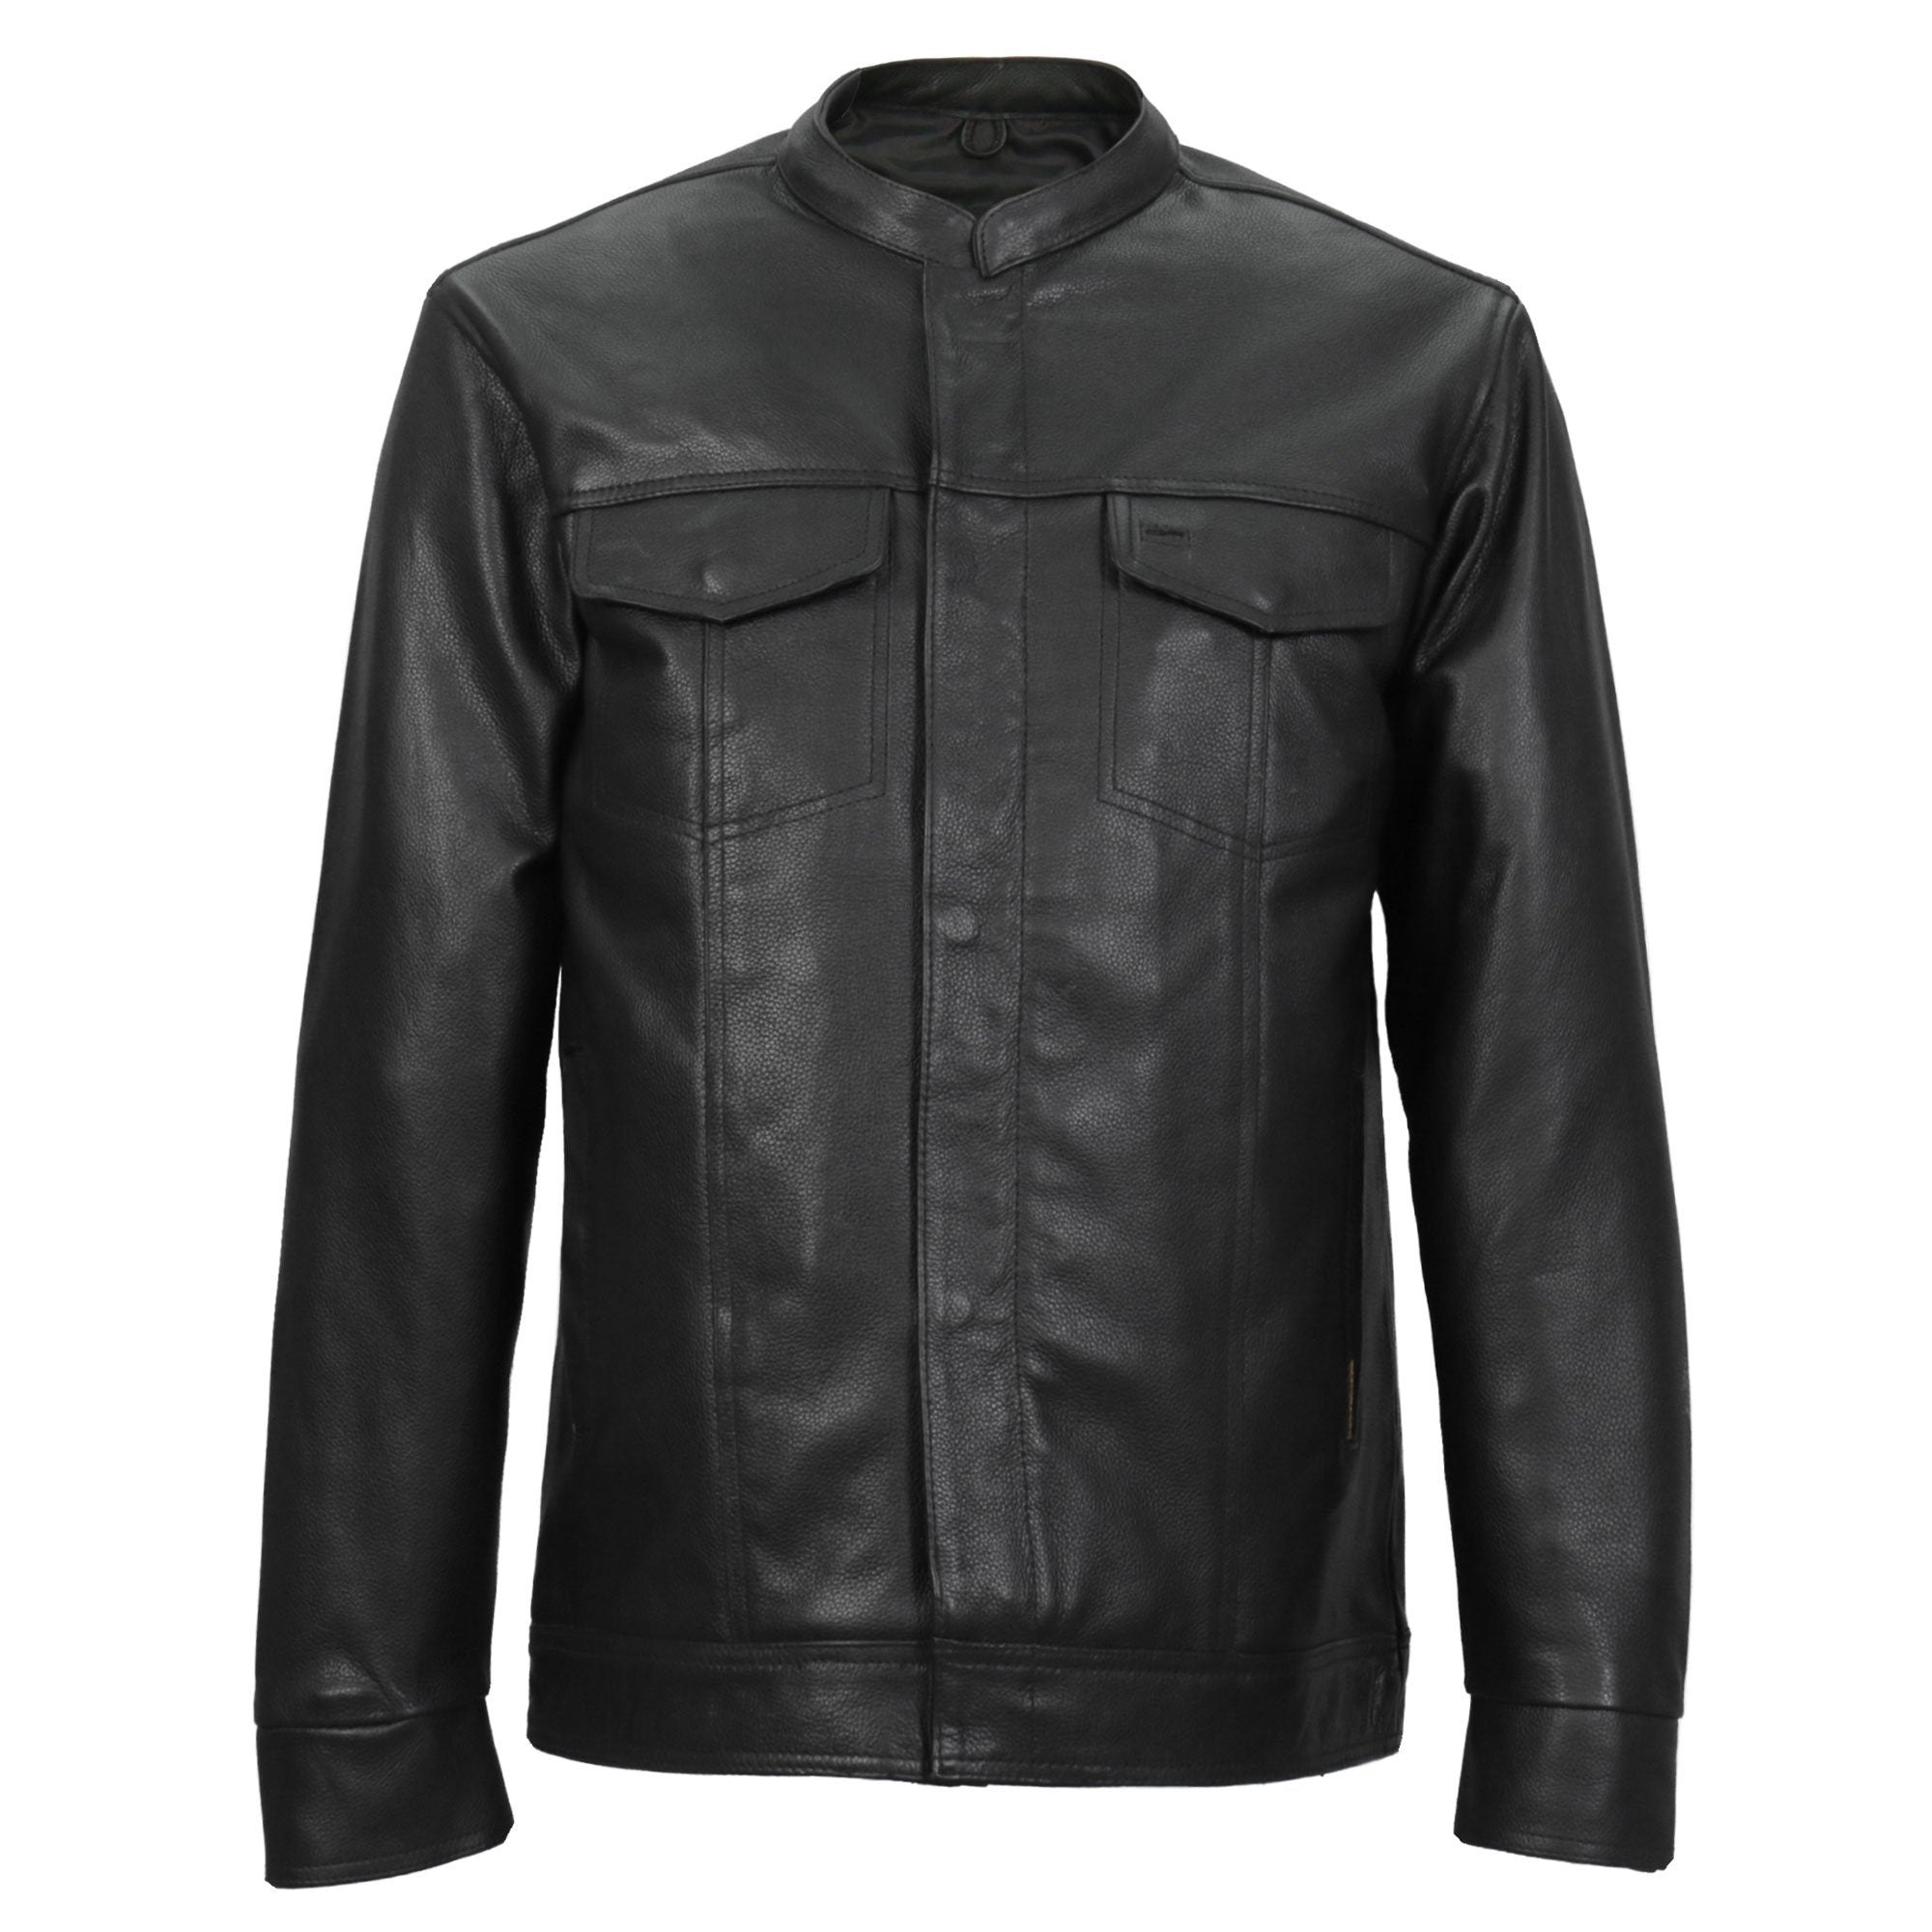 Hot Leathers Men's Club Style Leather Shirt